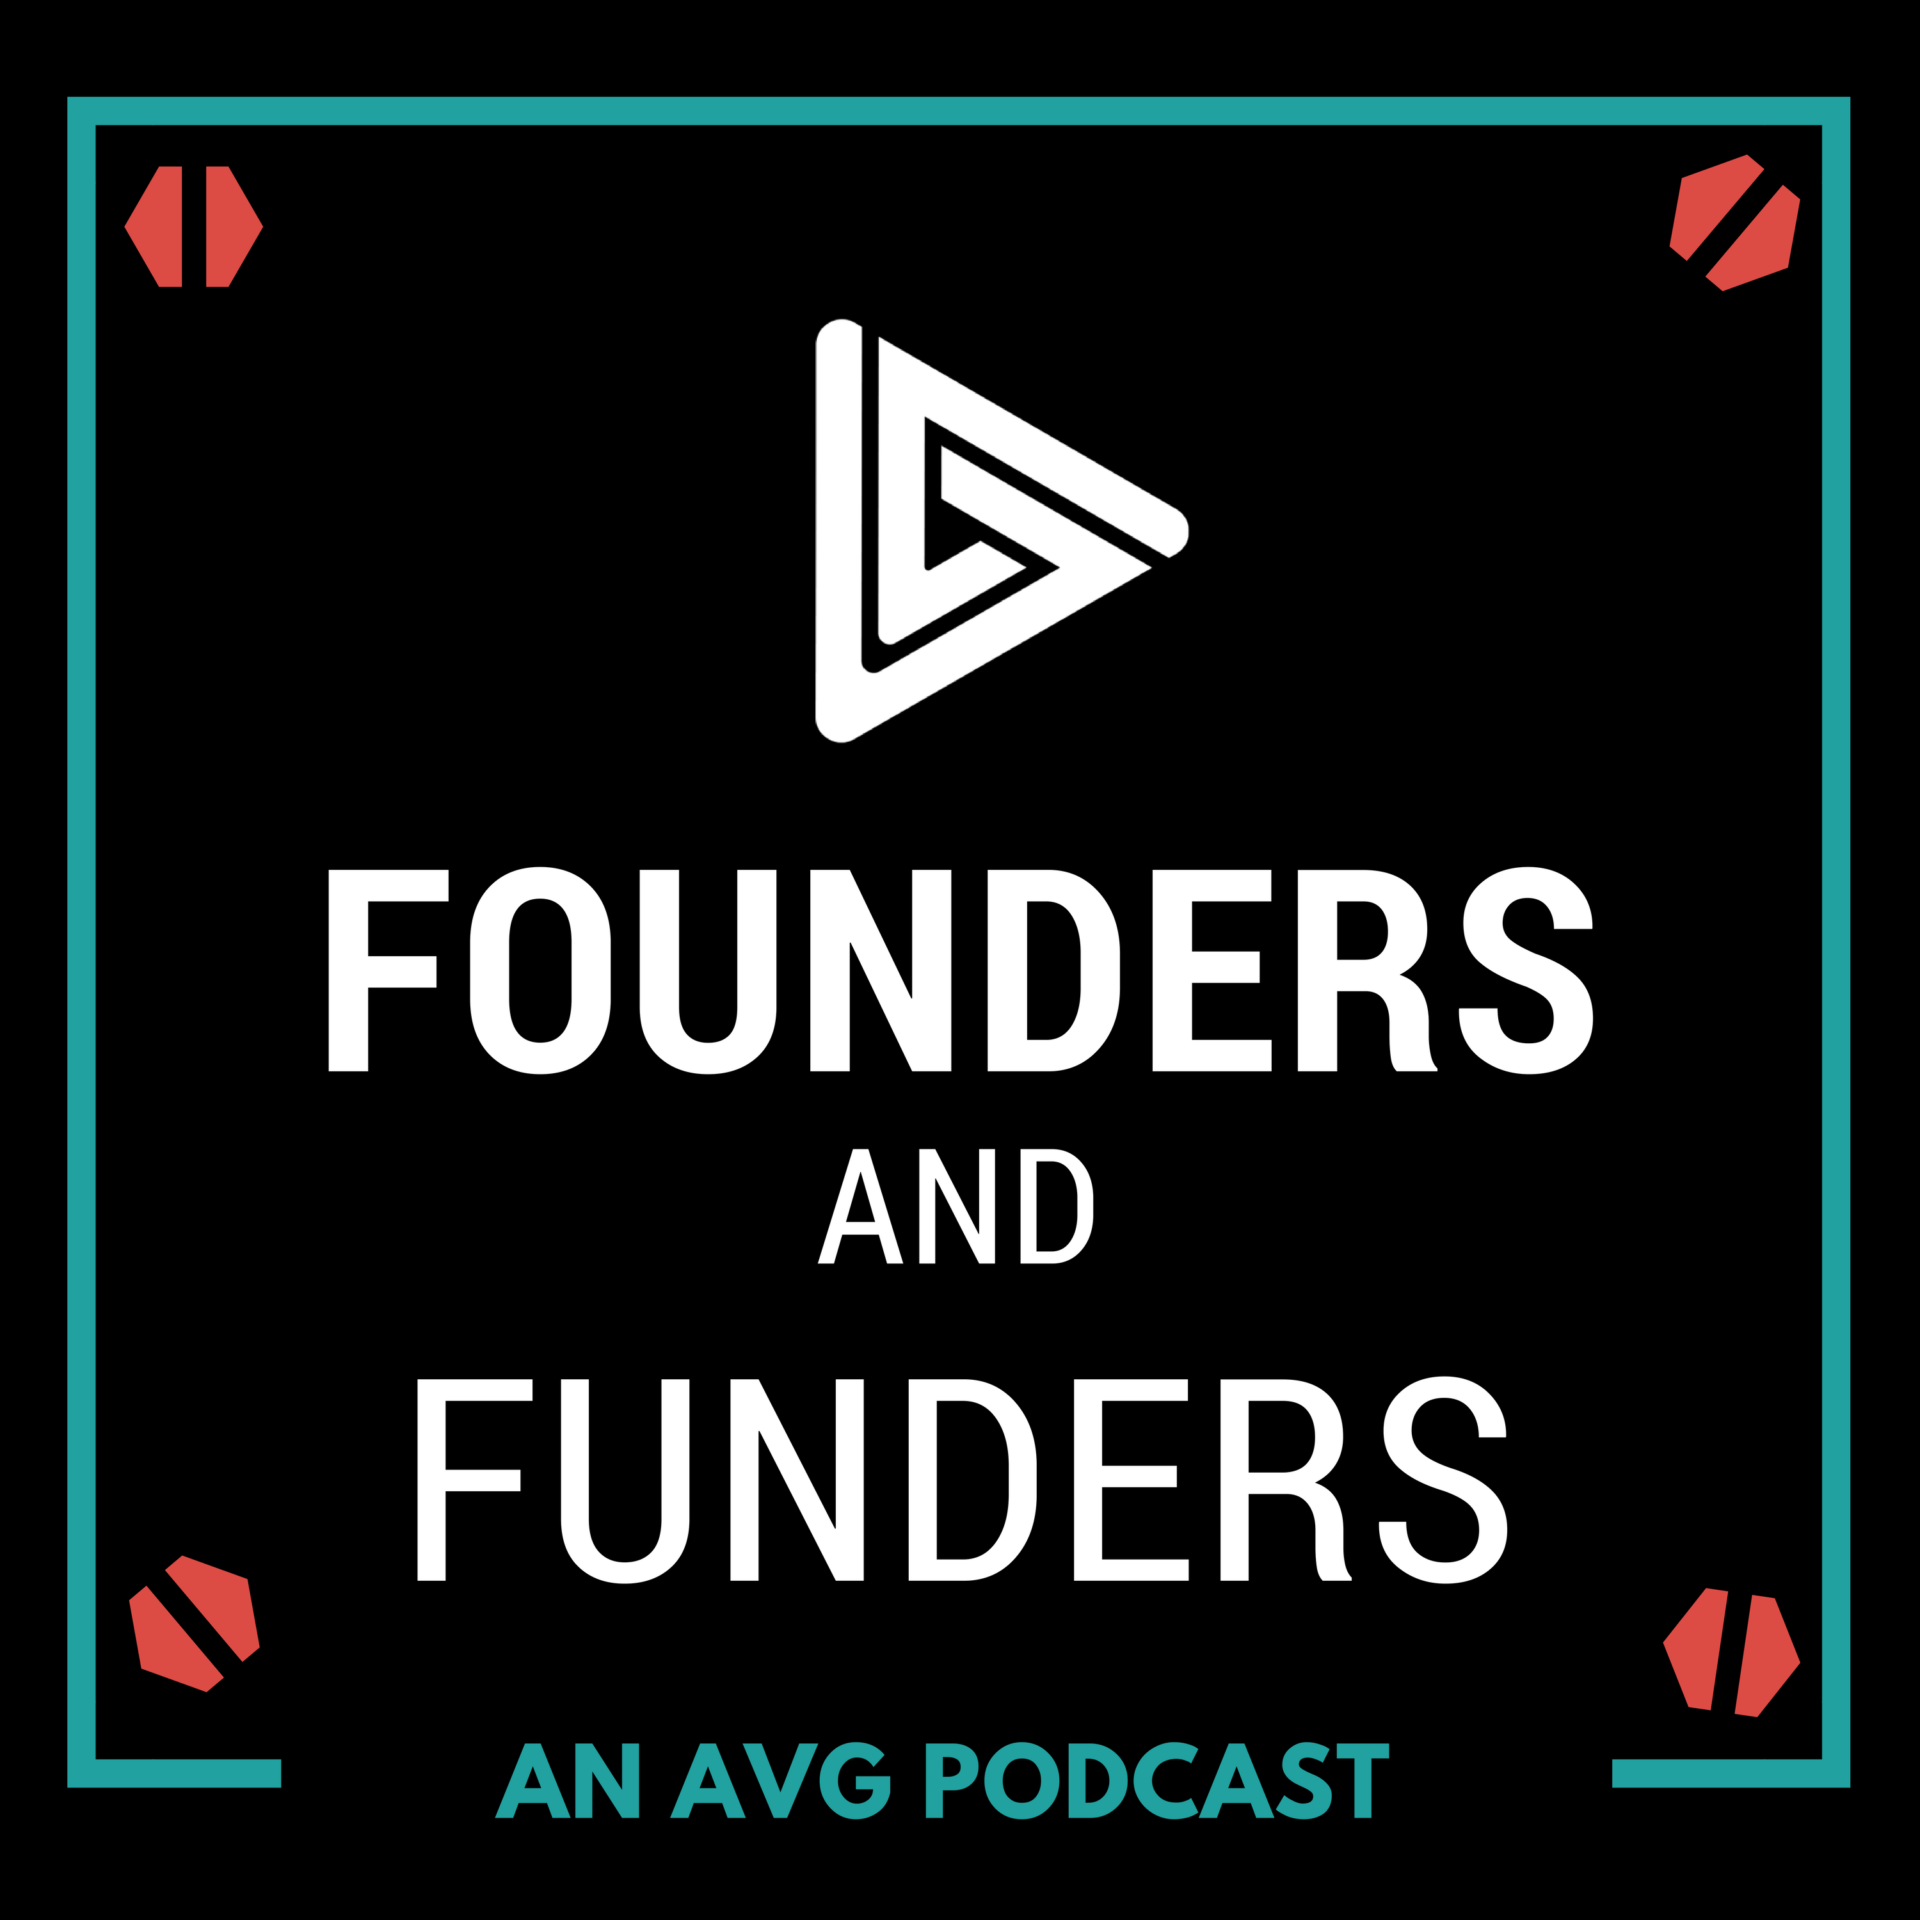 Founders and Funders